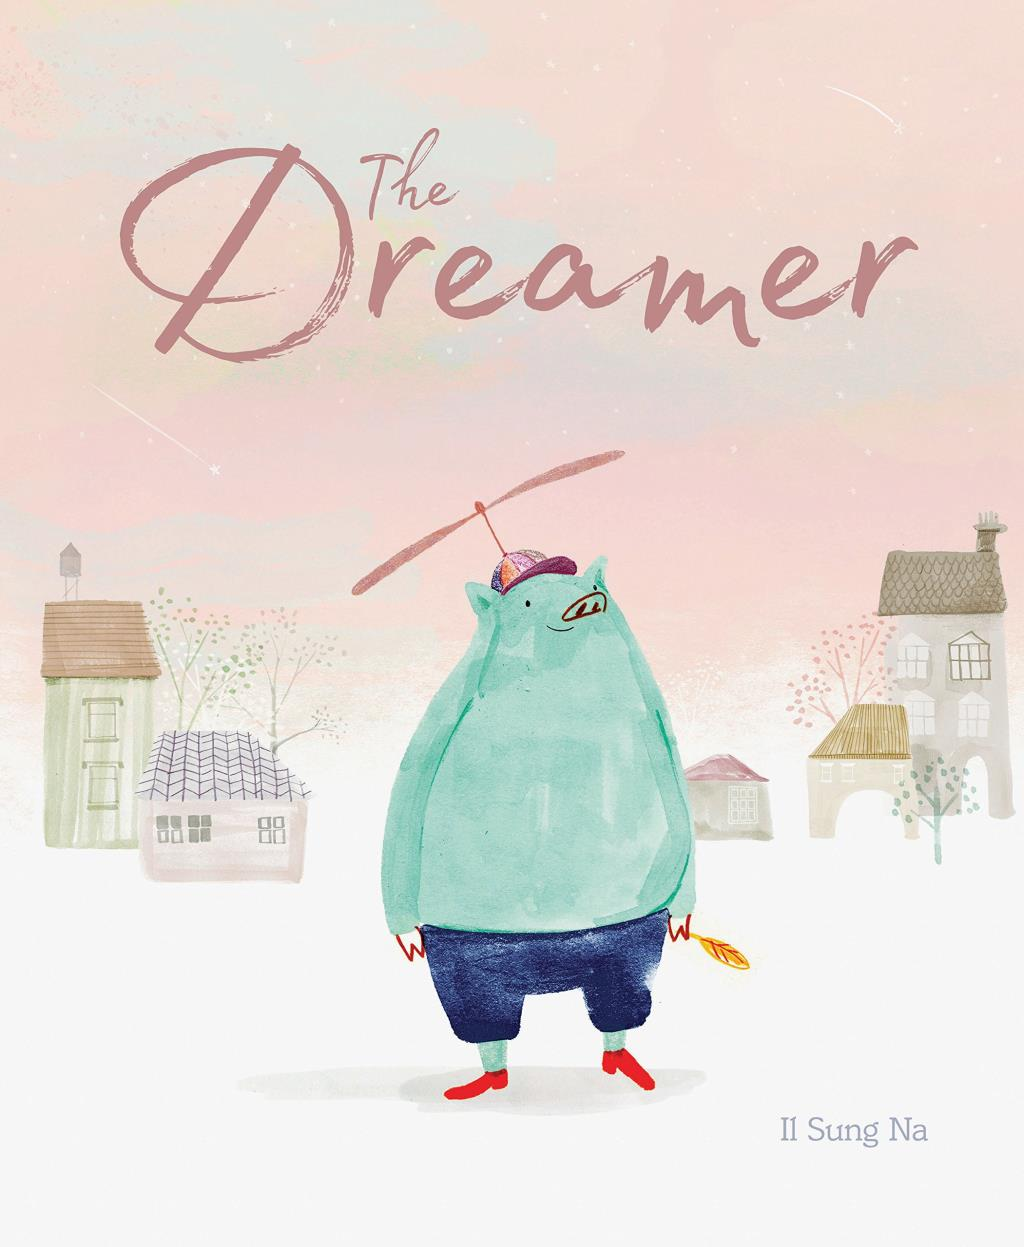 The Dreamer by Il Sung Na - Chronicle Books